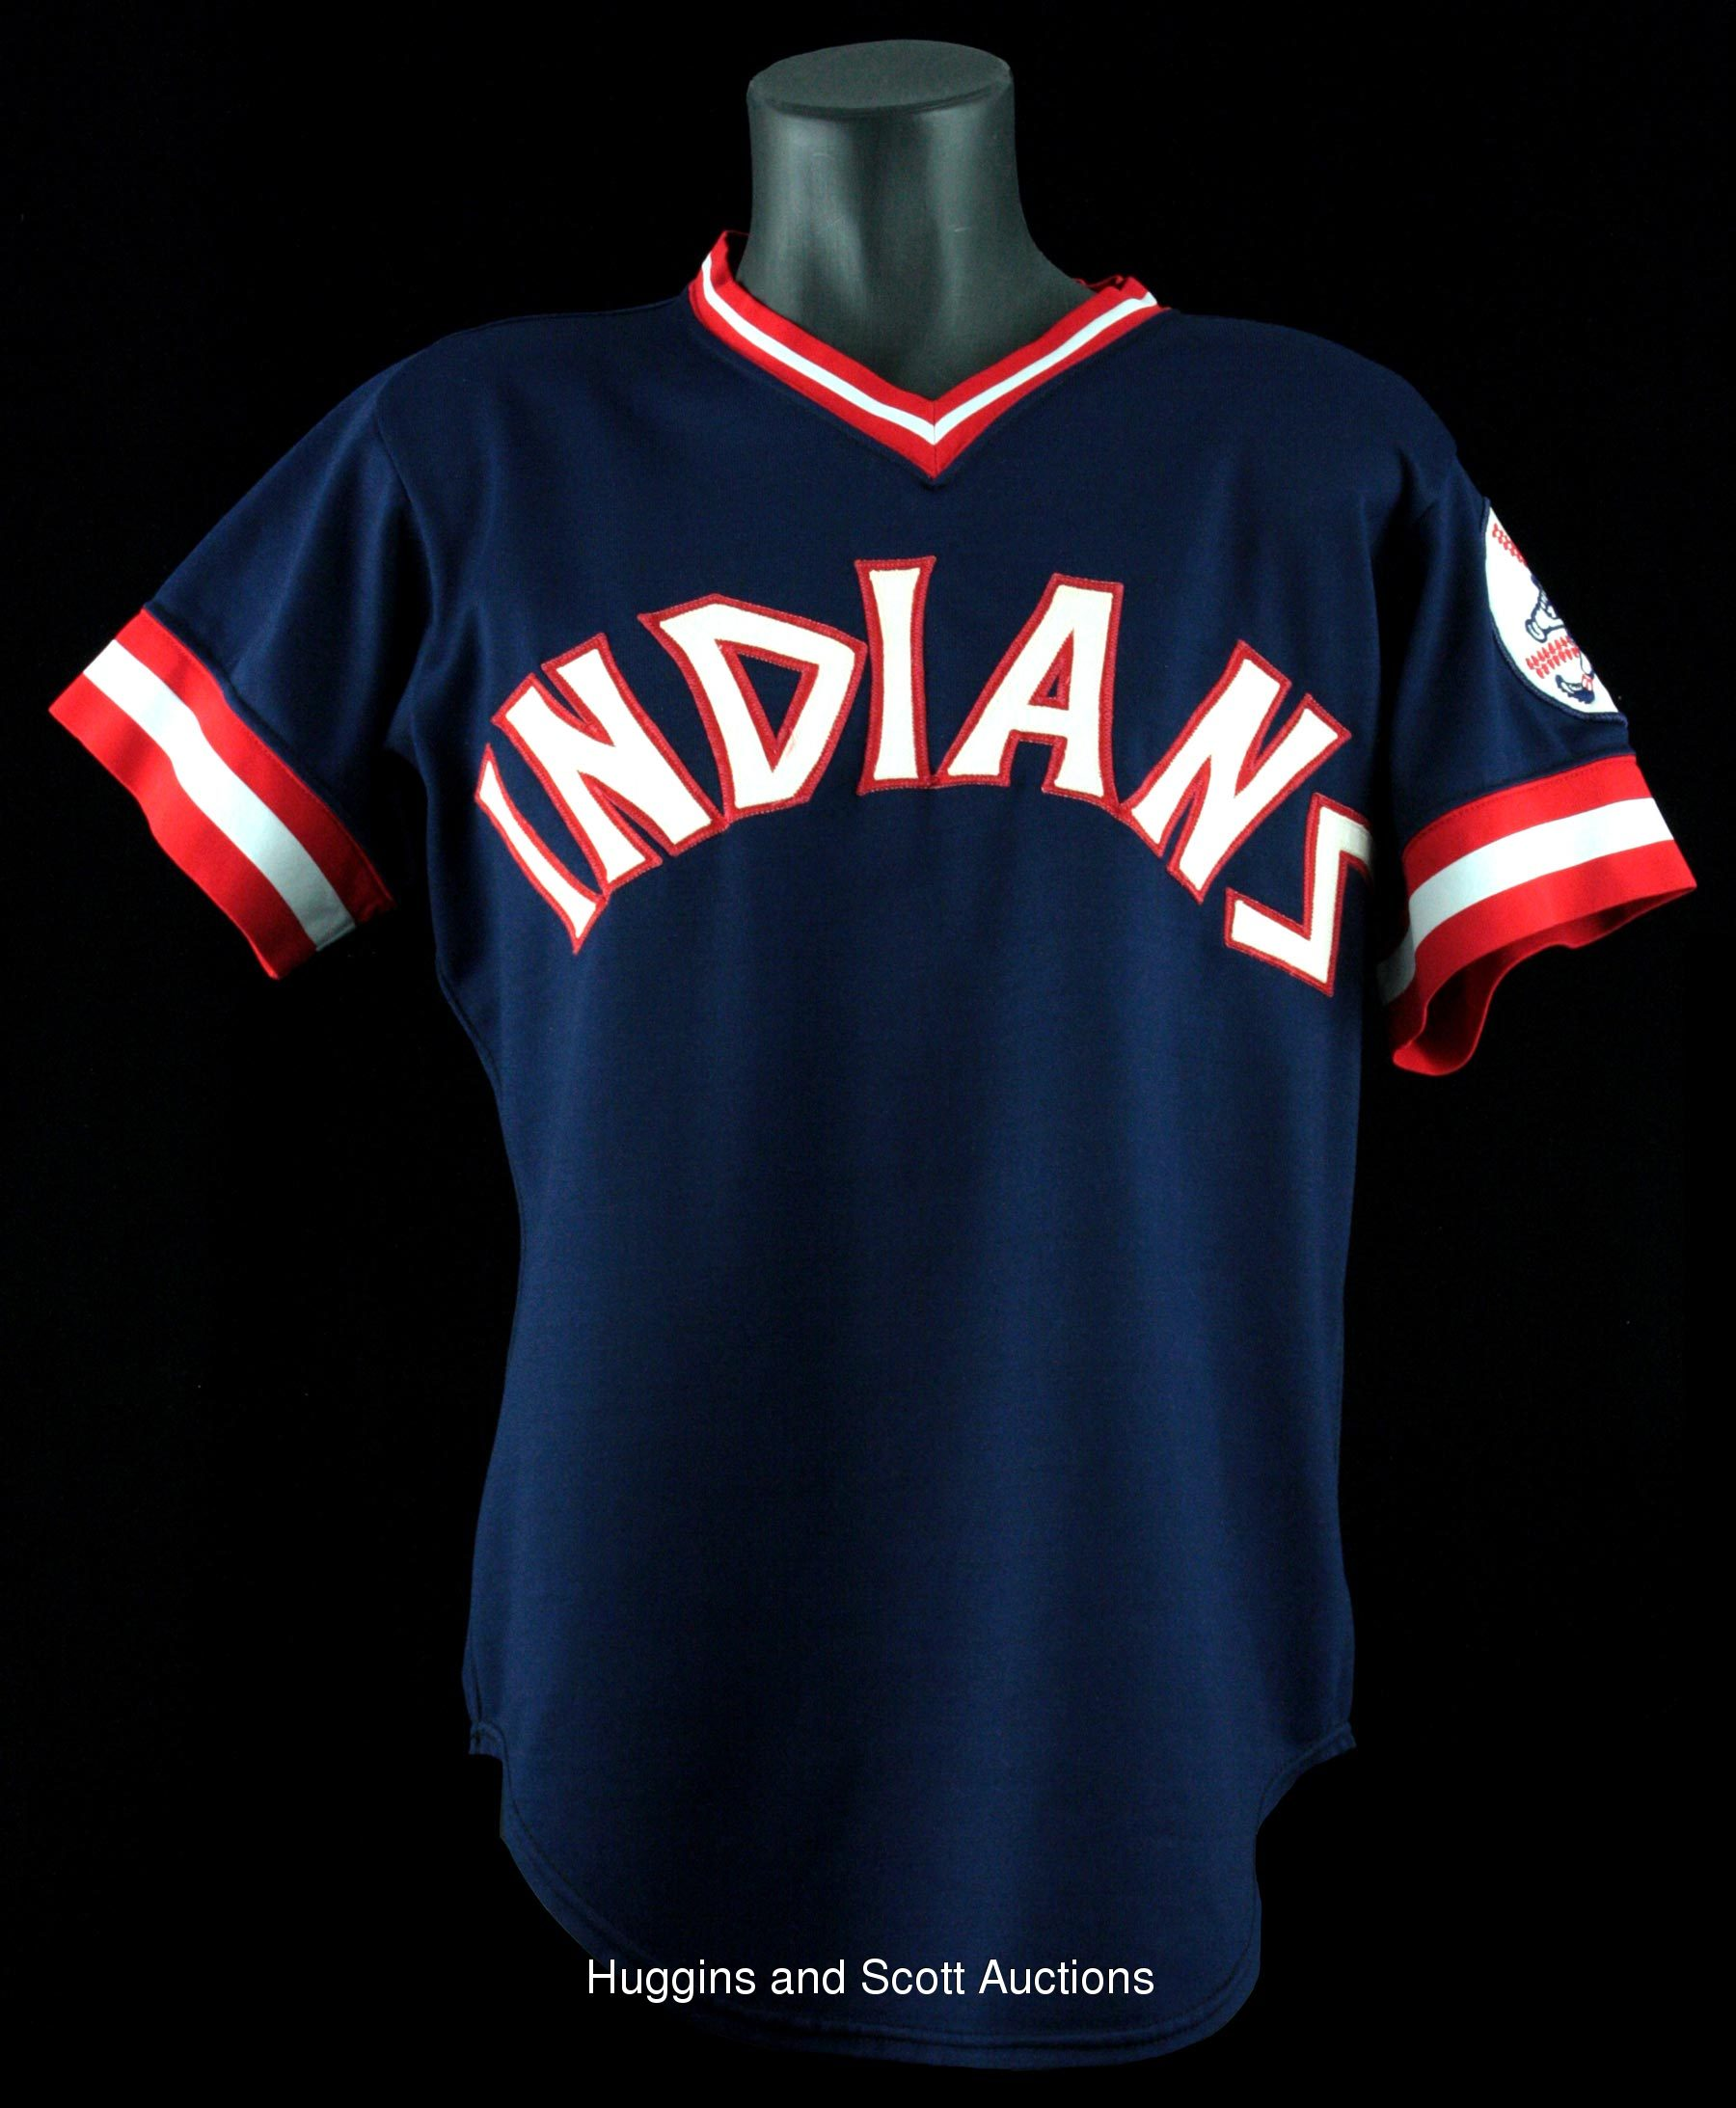 1975 cleveland indians jersey